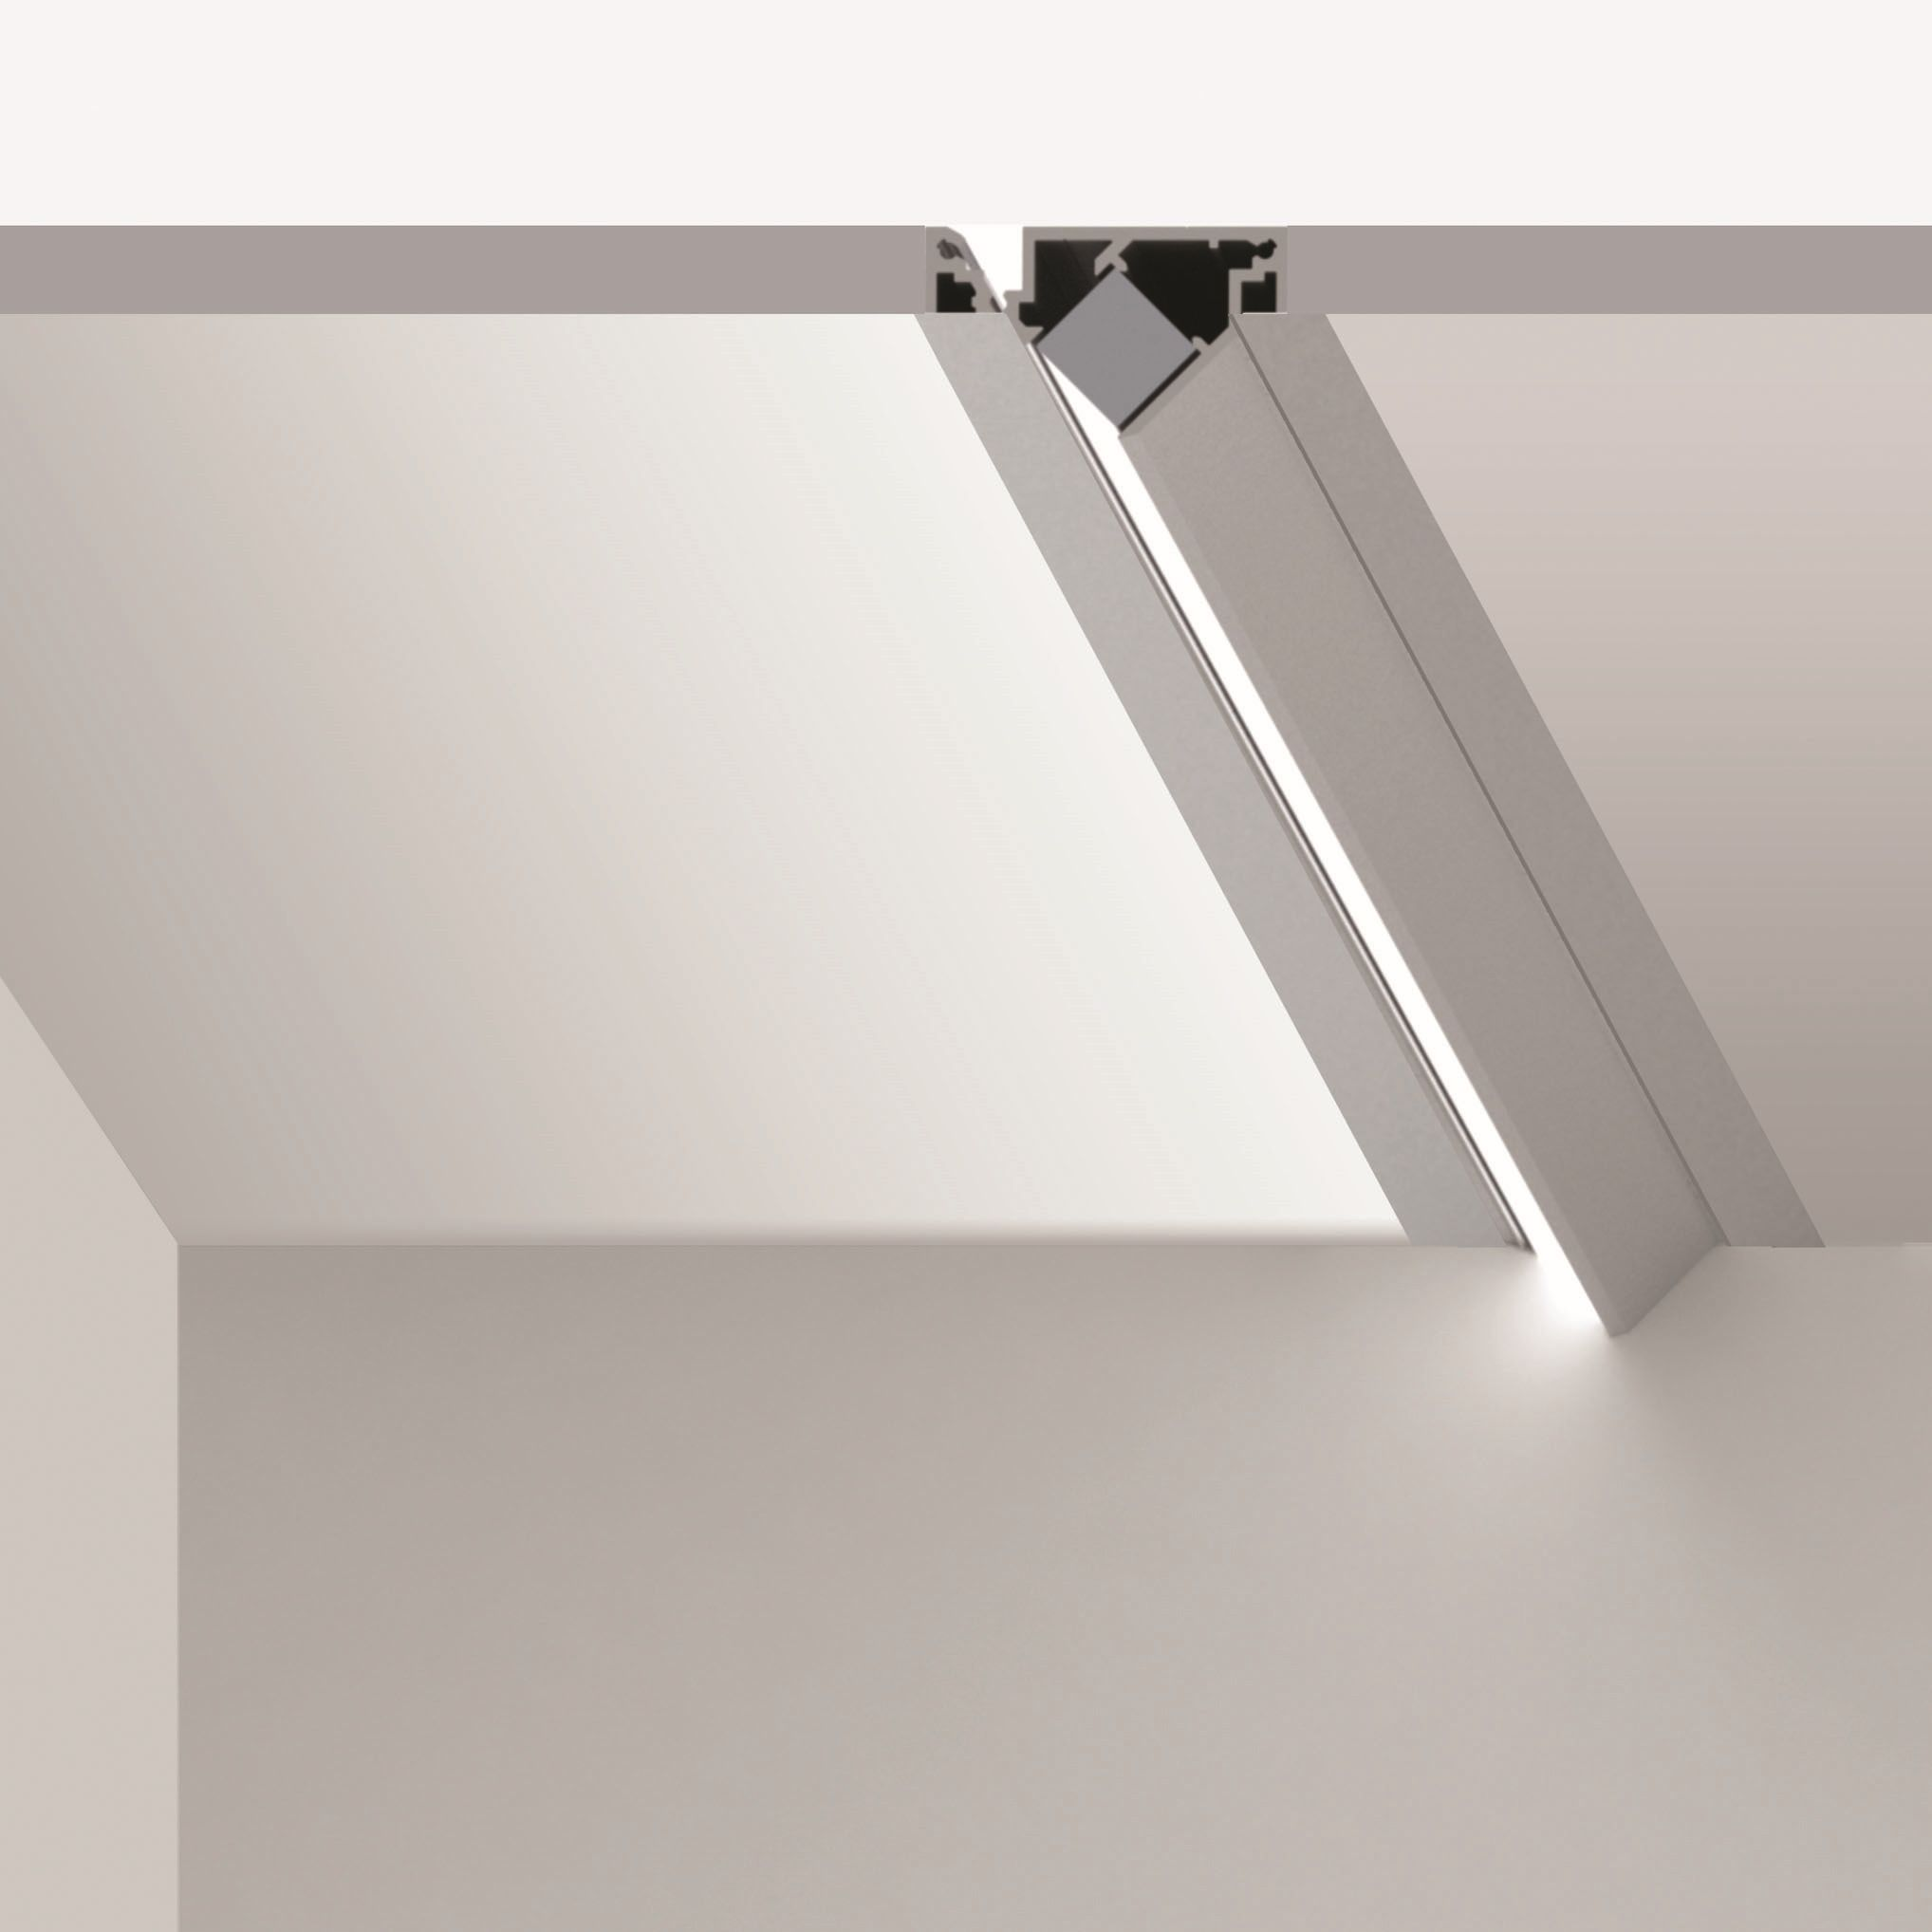 20 Linear Wall Wash Semi-Recessed - Regressed Bezel Trim